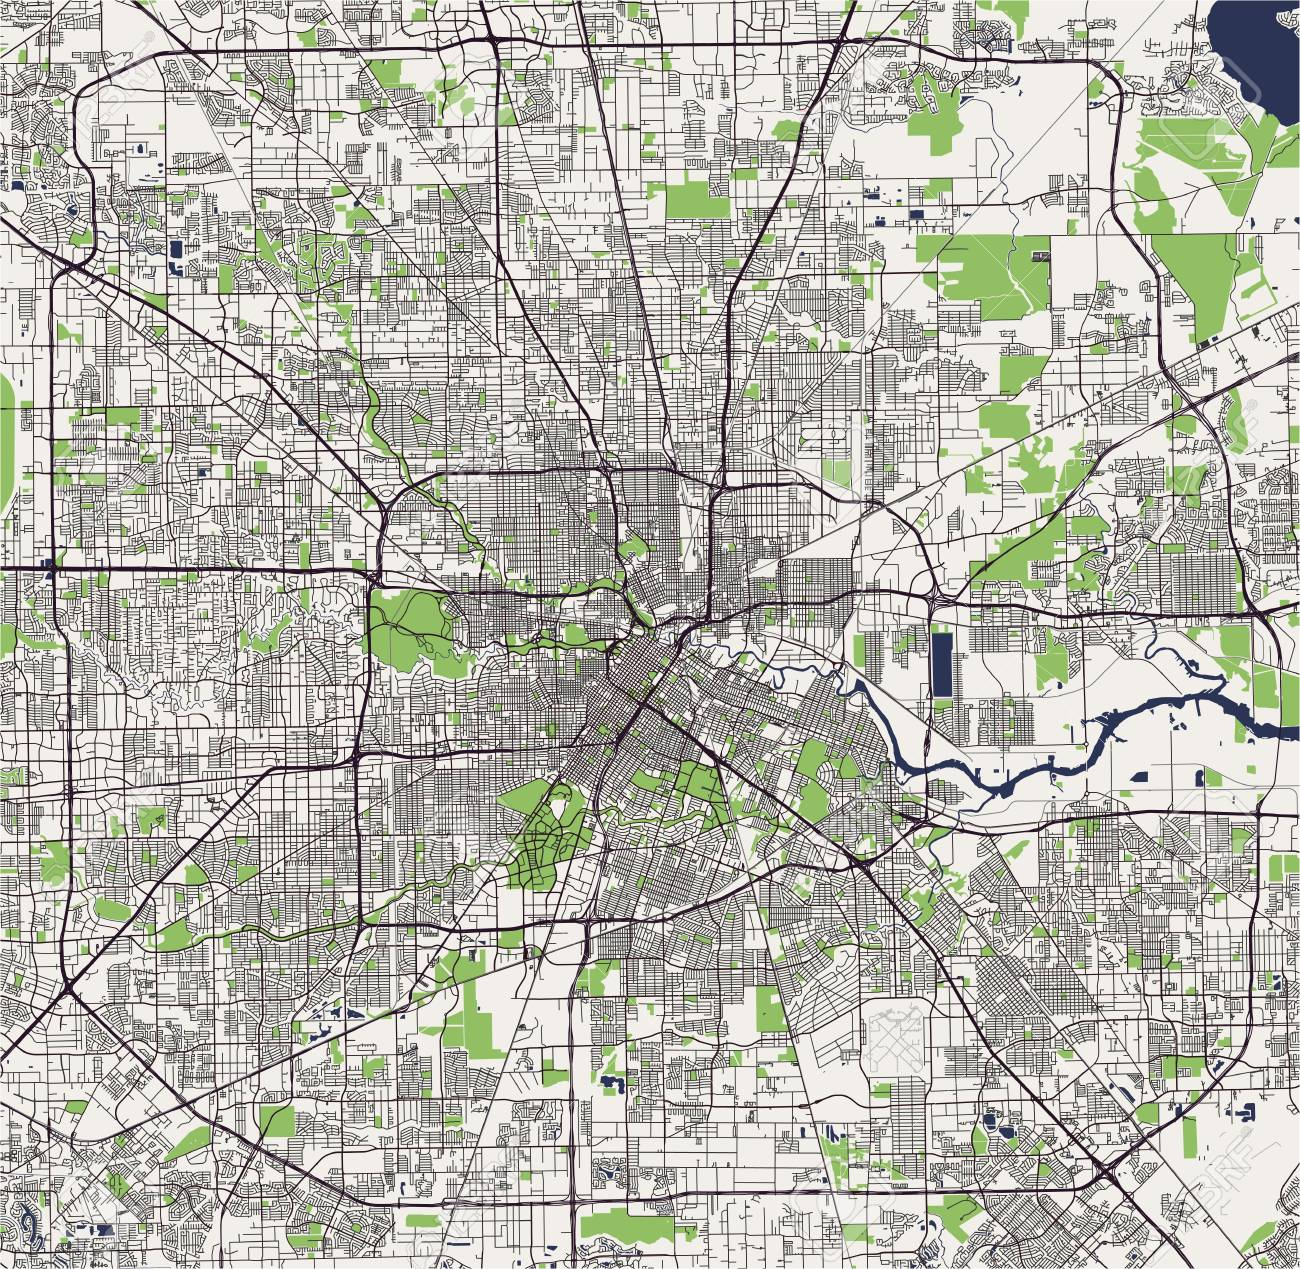 Map of the city of Houston US state of Texas vector illustration Map City Of Houston on texas map, houston independent school district map, citycentre houston map, los angeles houston map, water wall houston map, northeast houston map, downtown houston map, houston city district map, city md map, houston city road map, city nc map, city ny map, md anderson houston map, houston city council map, harris county zip code map, 1920s houston map, houston city limits map, movie theaters houston map, detroit houston map, city arkansas map,